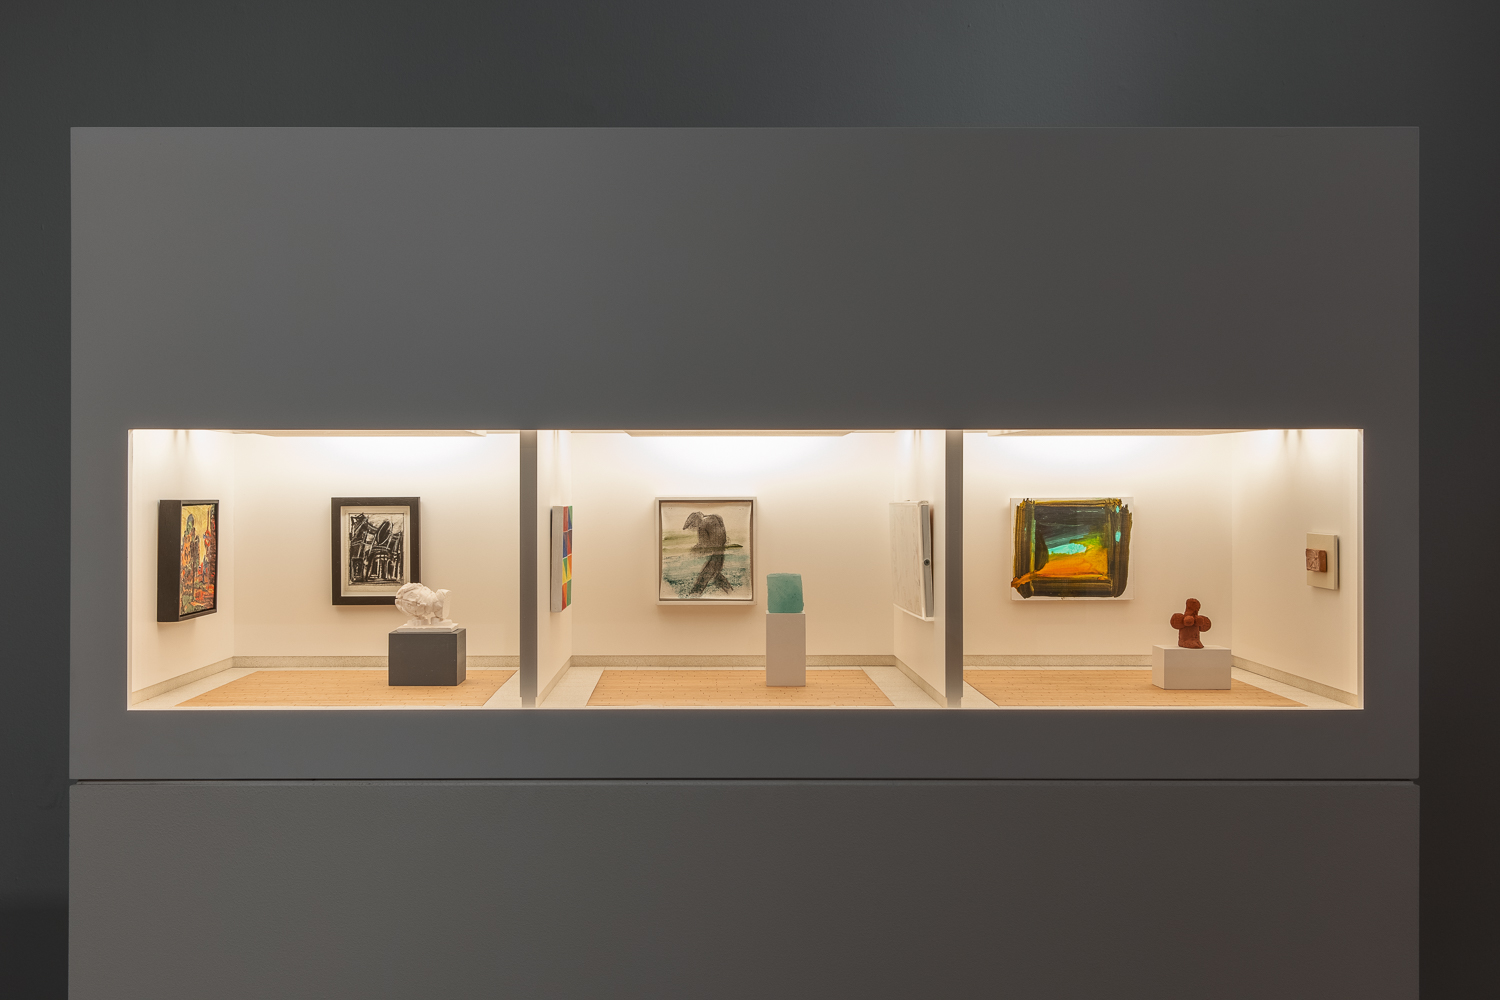 A model art gallery consisting of three rooms with white walls and wooden and stone-look flooring. In each room of paintings and sculptures.